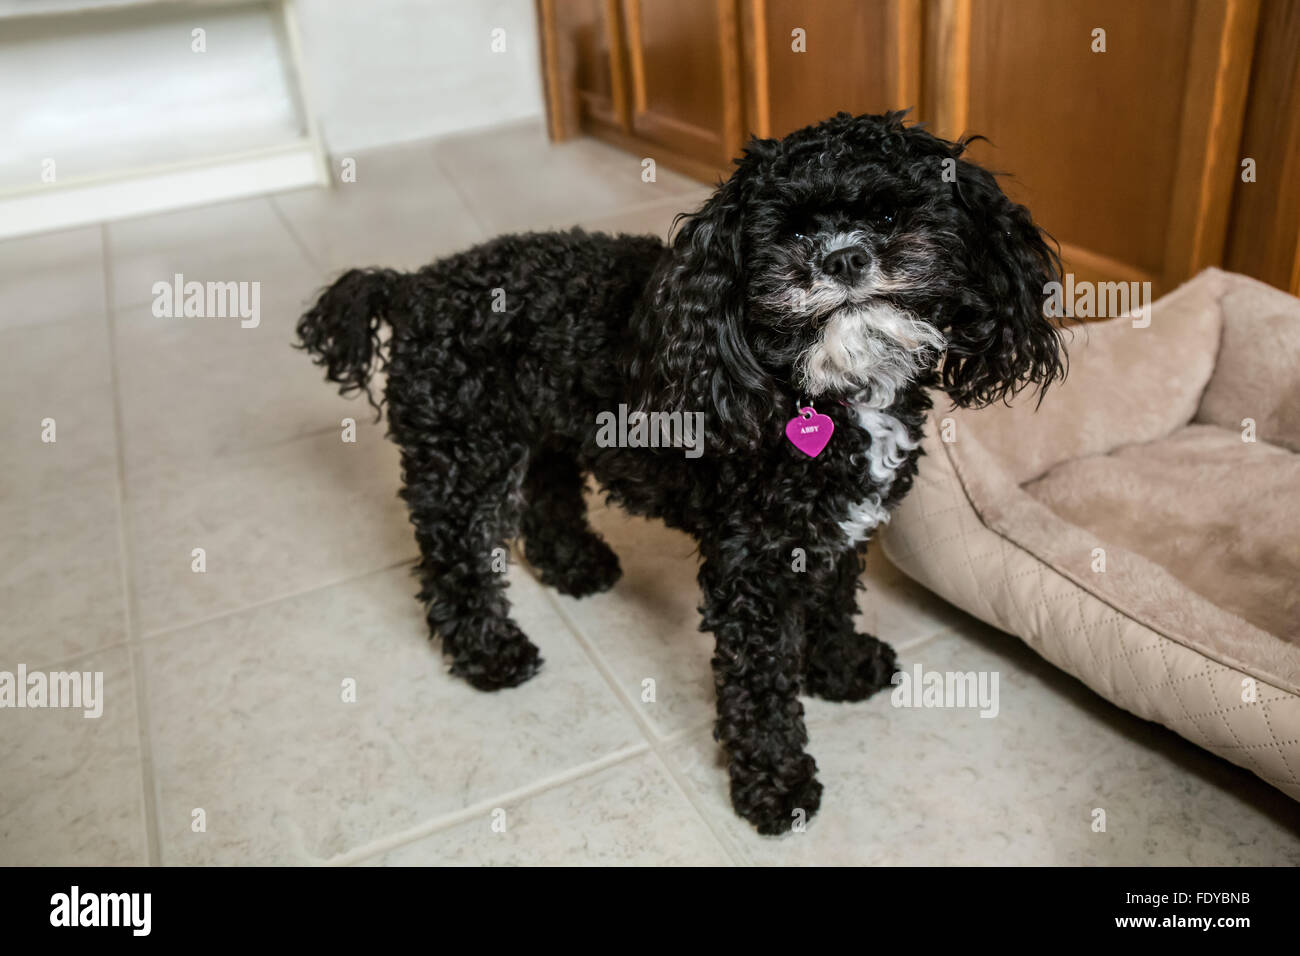 Toy Poodle Stock Photos Toy Poodle Stock Images Page 2